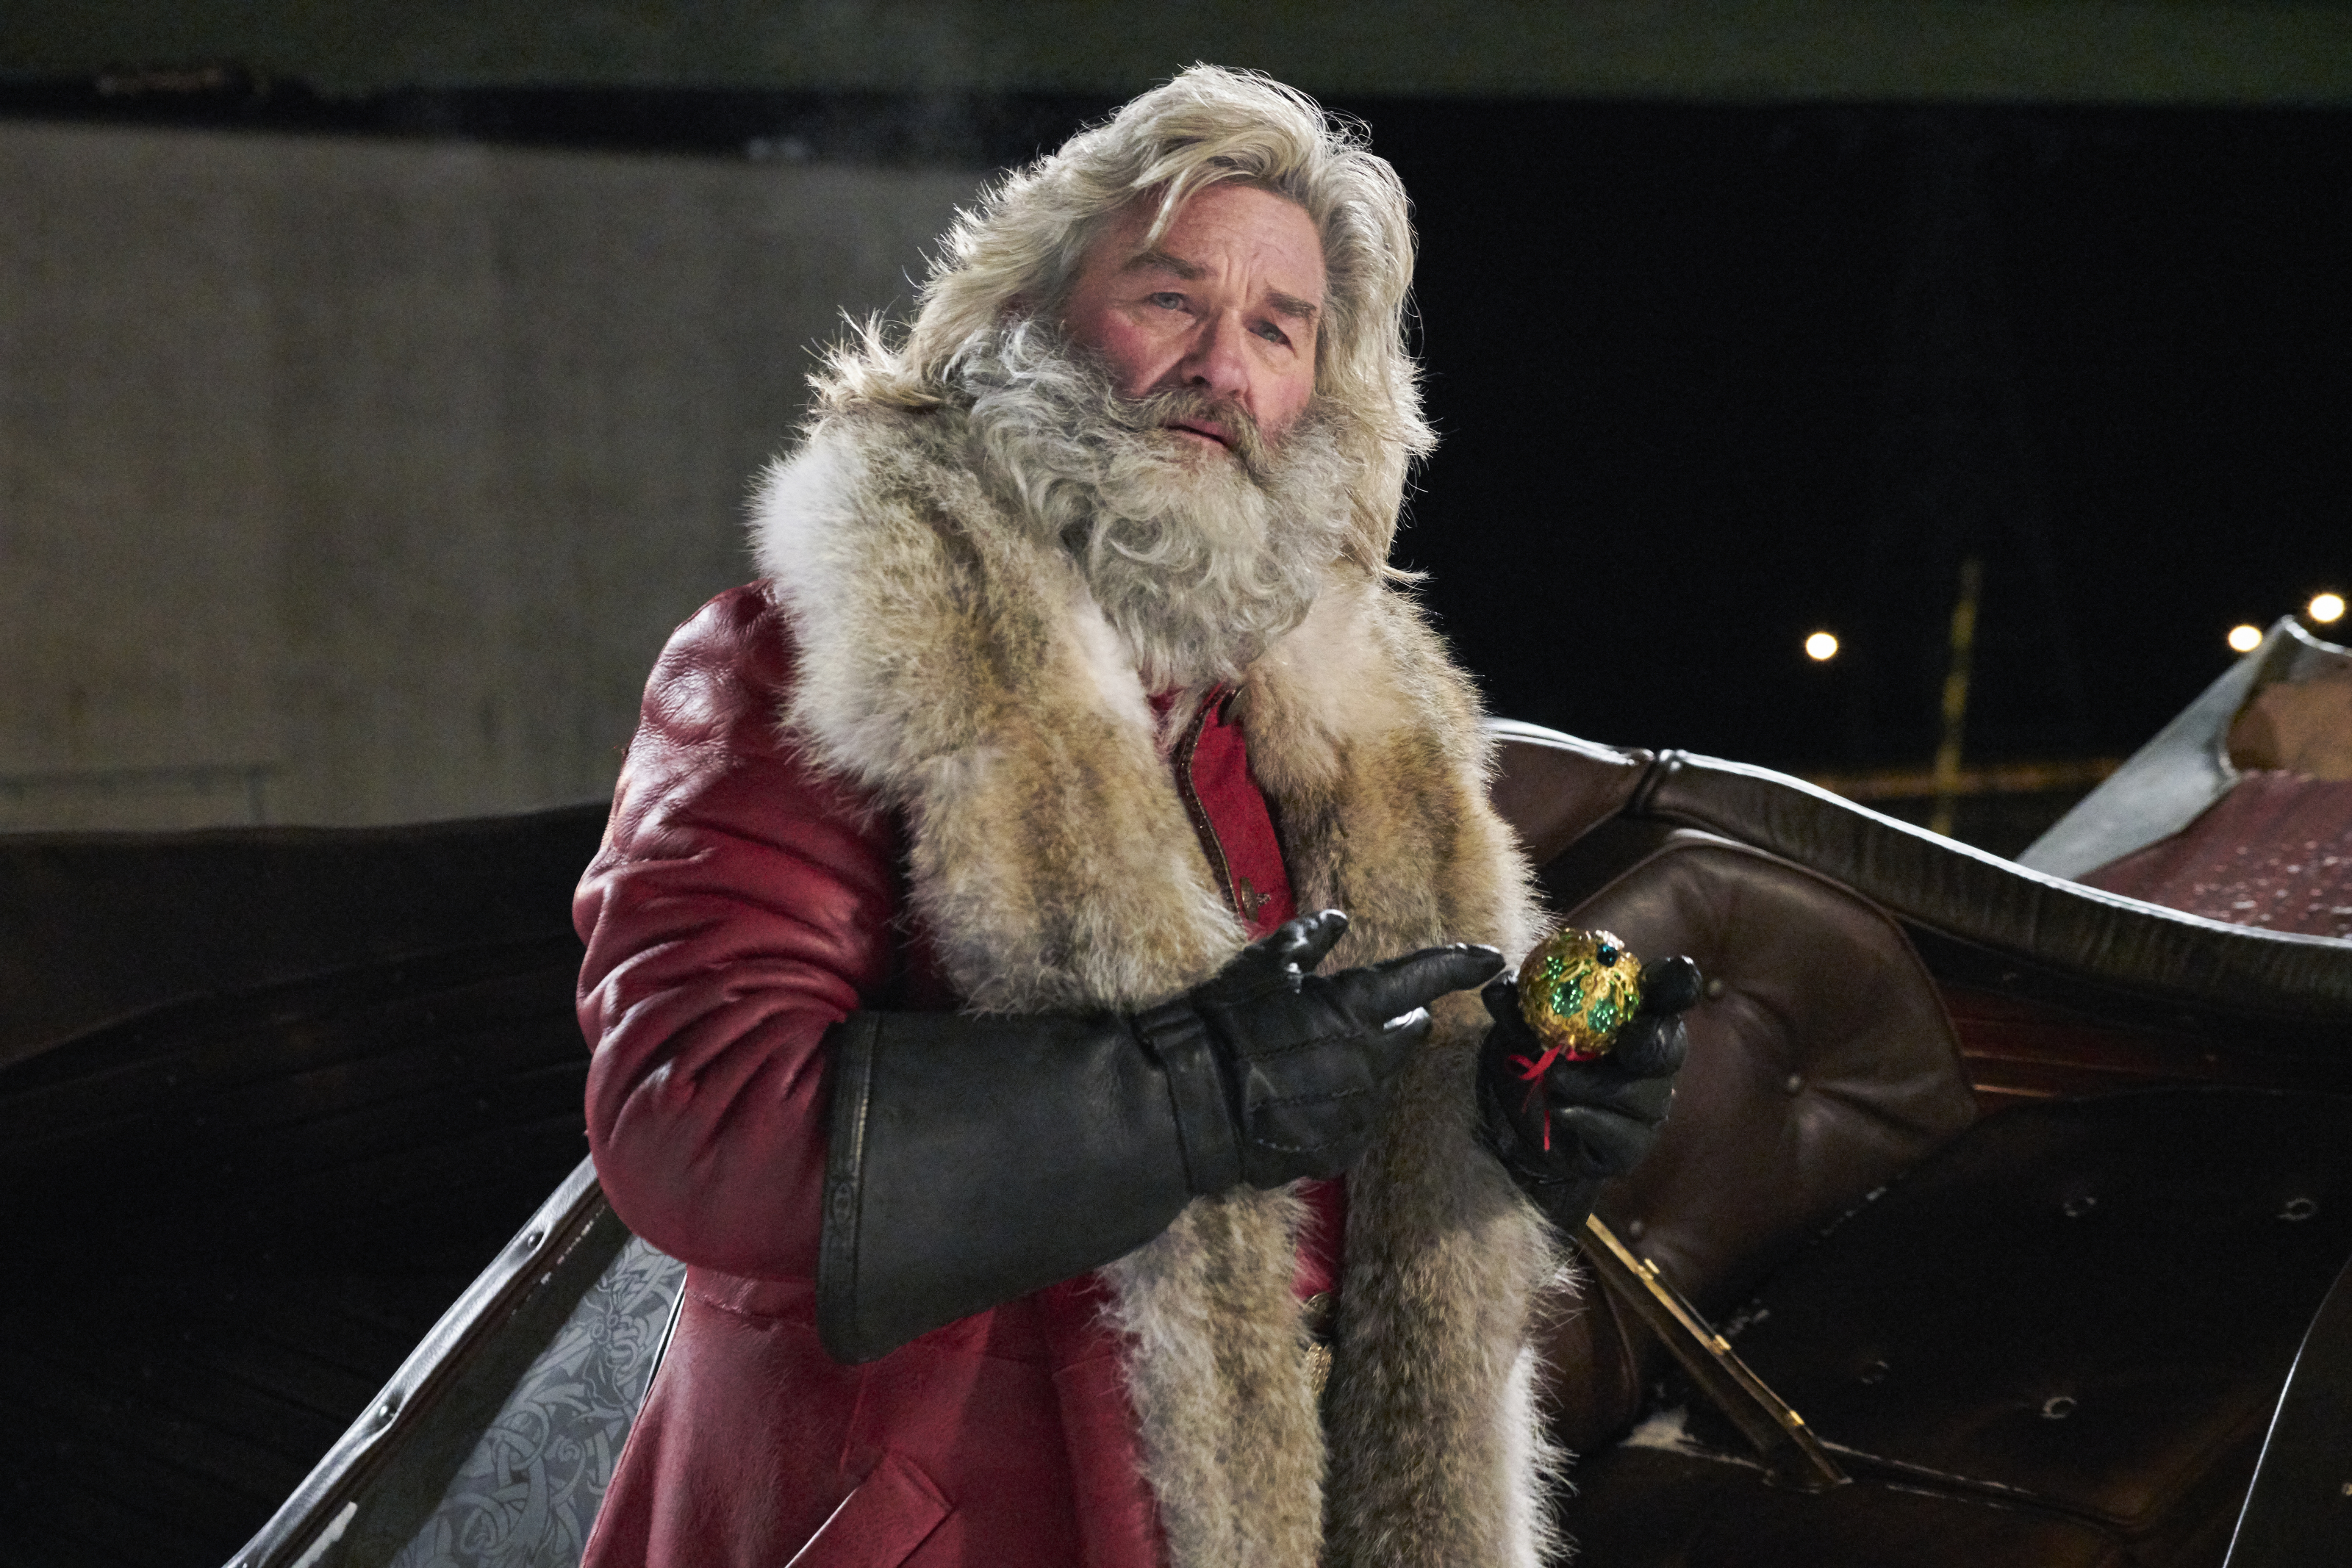 Christmas Chronicles 2020 Cast The Christmas Chronicles 2 release date, cast, synopsis, trailer